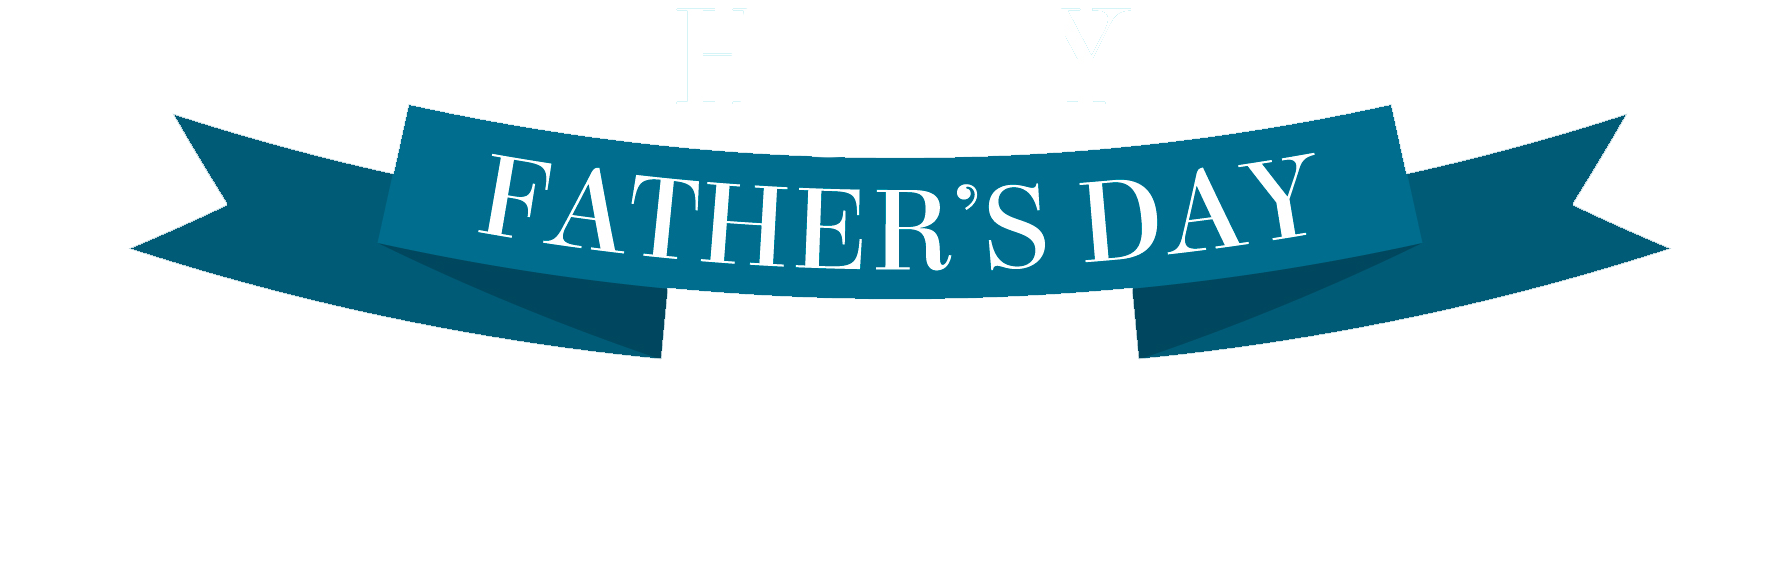 Dad day png. Fathers clipart peoplepng com